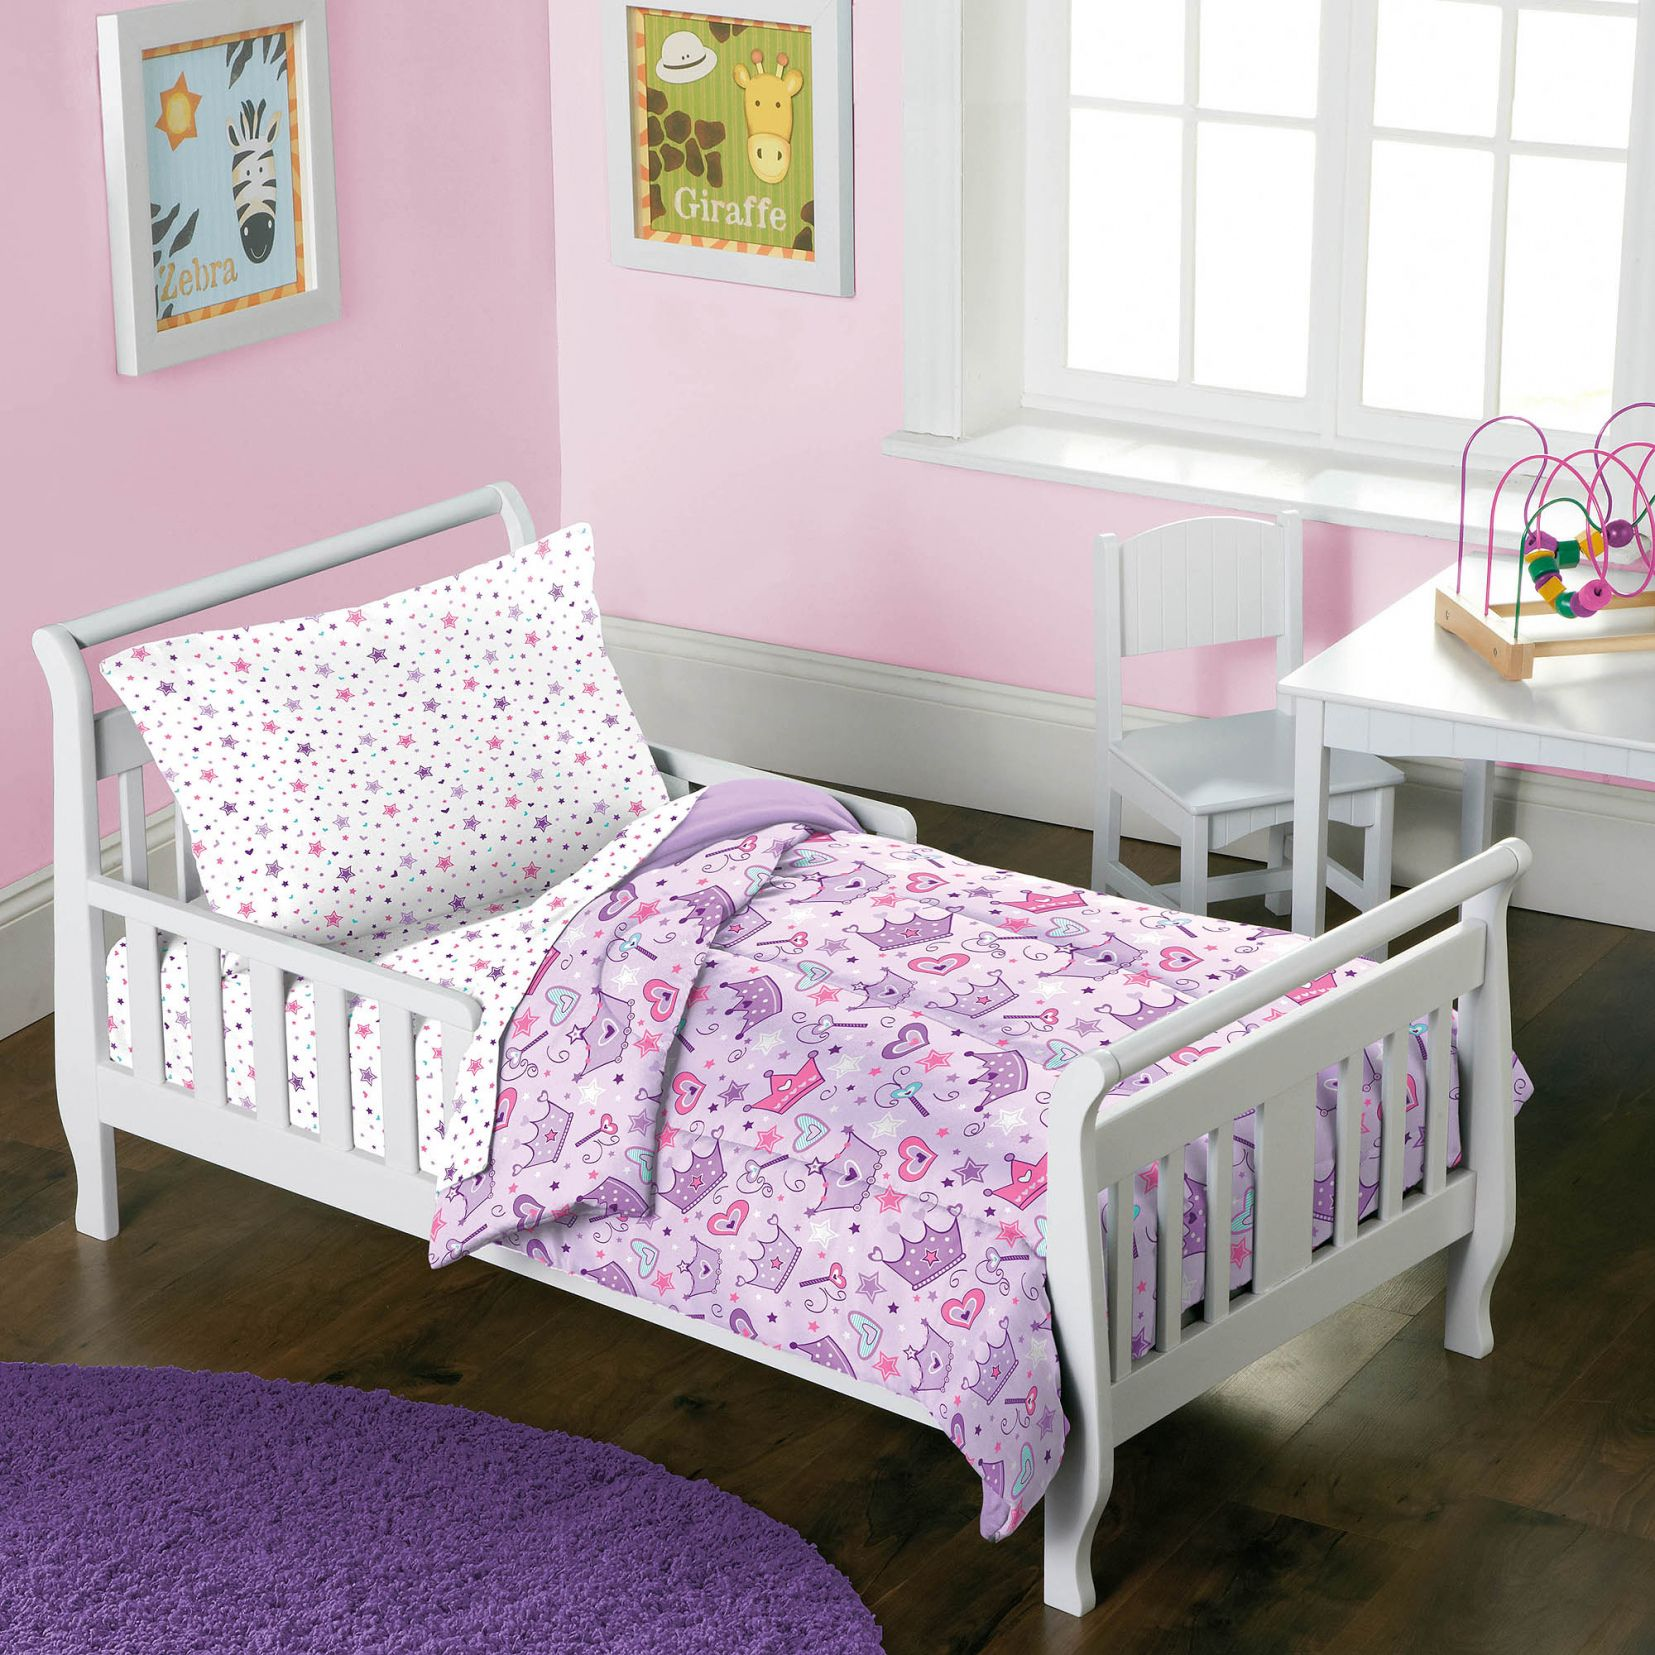 2018 Princess Bedding for toddler Bed Ideas for A Small Bedroom